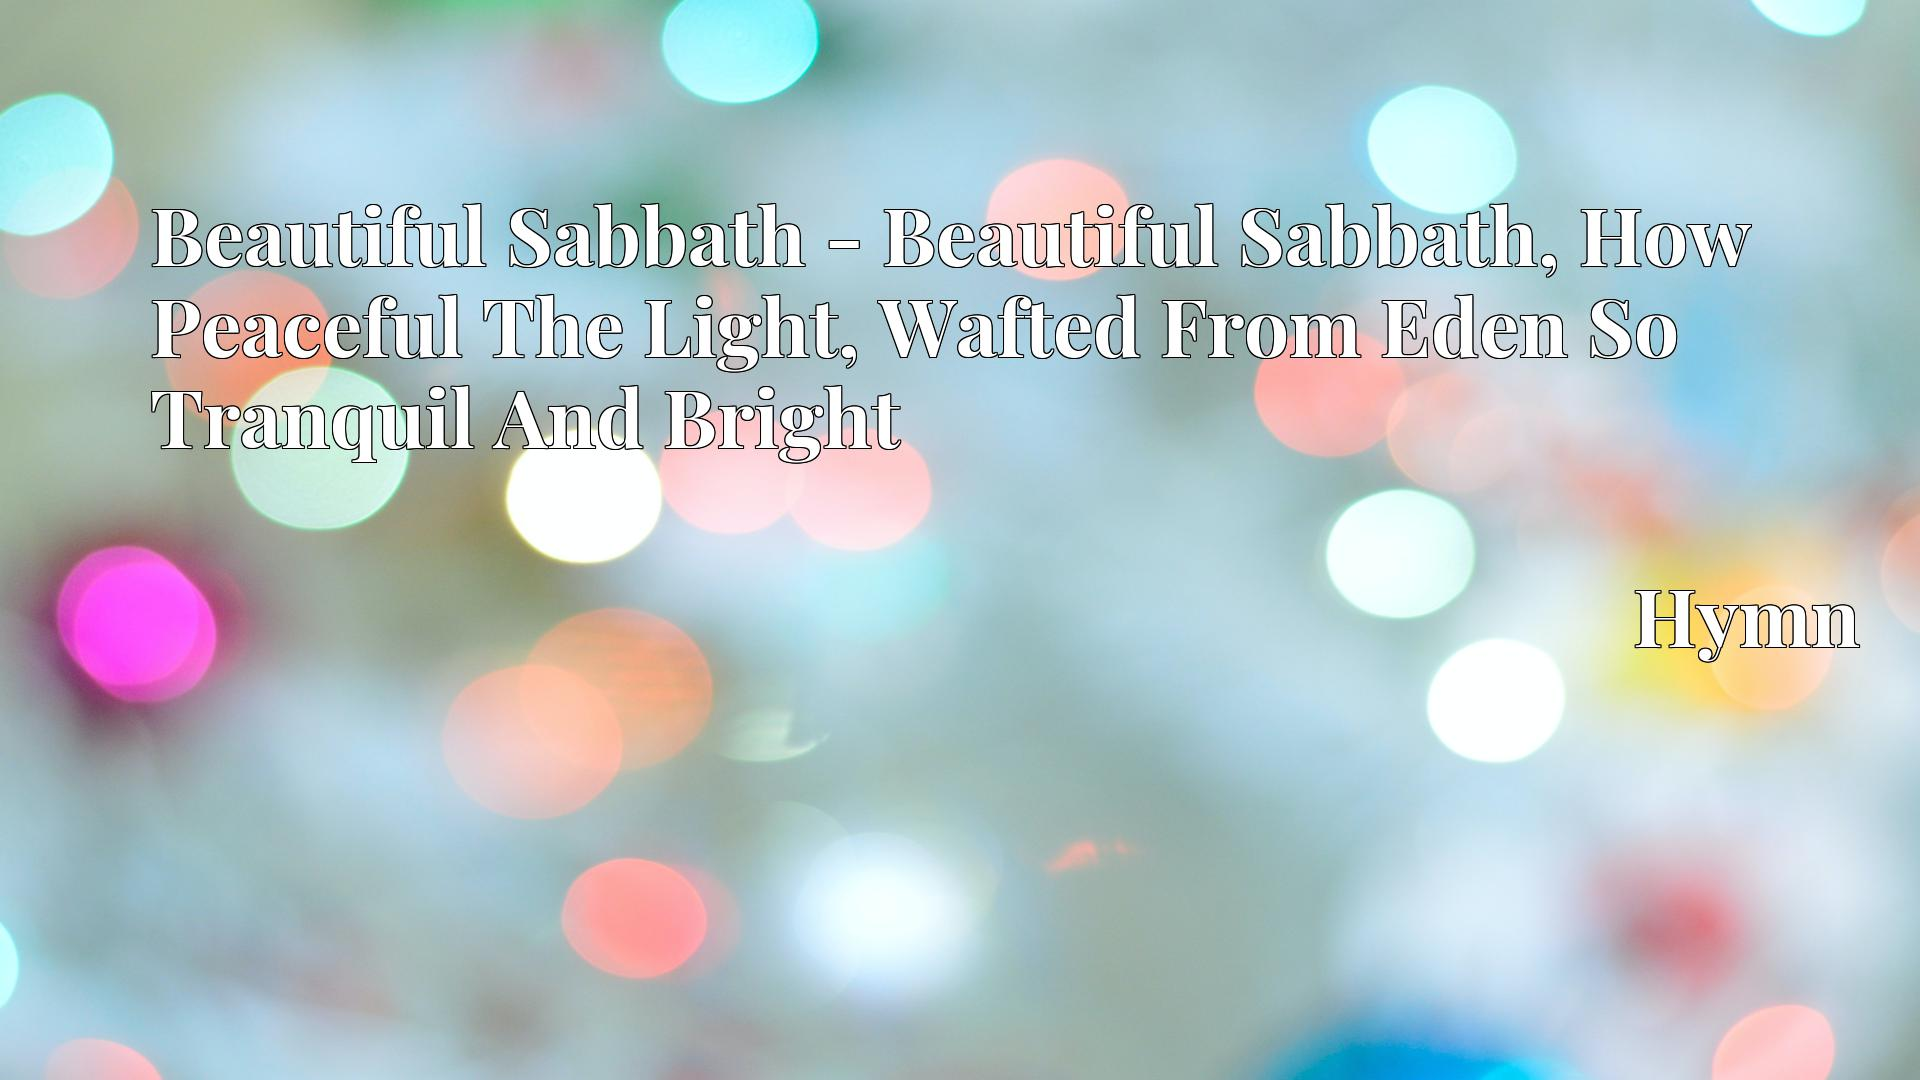 Beautiful Sabbath - Beautiful Sabbath, How Peaceful The Light, Wafted From Eden So Tranquil And Bright - Hymn